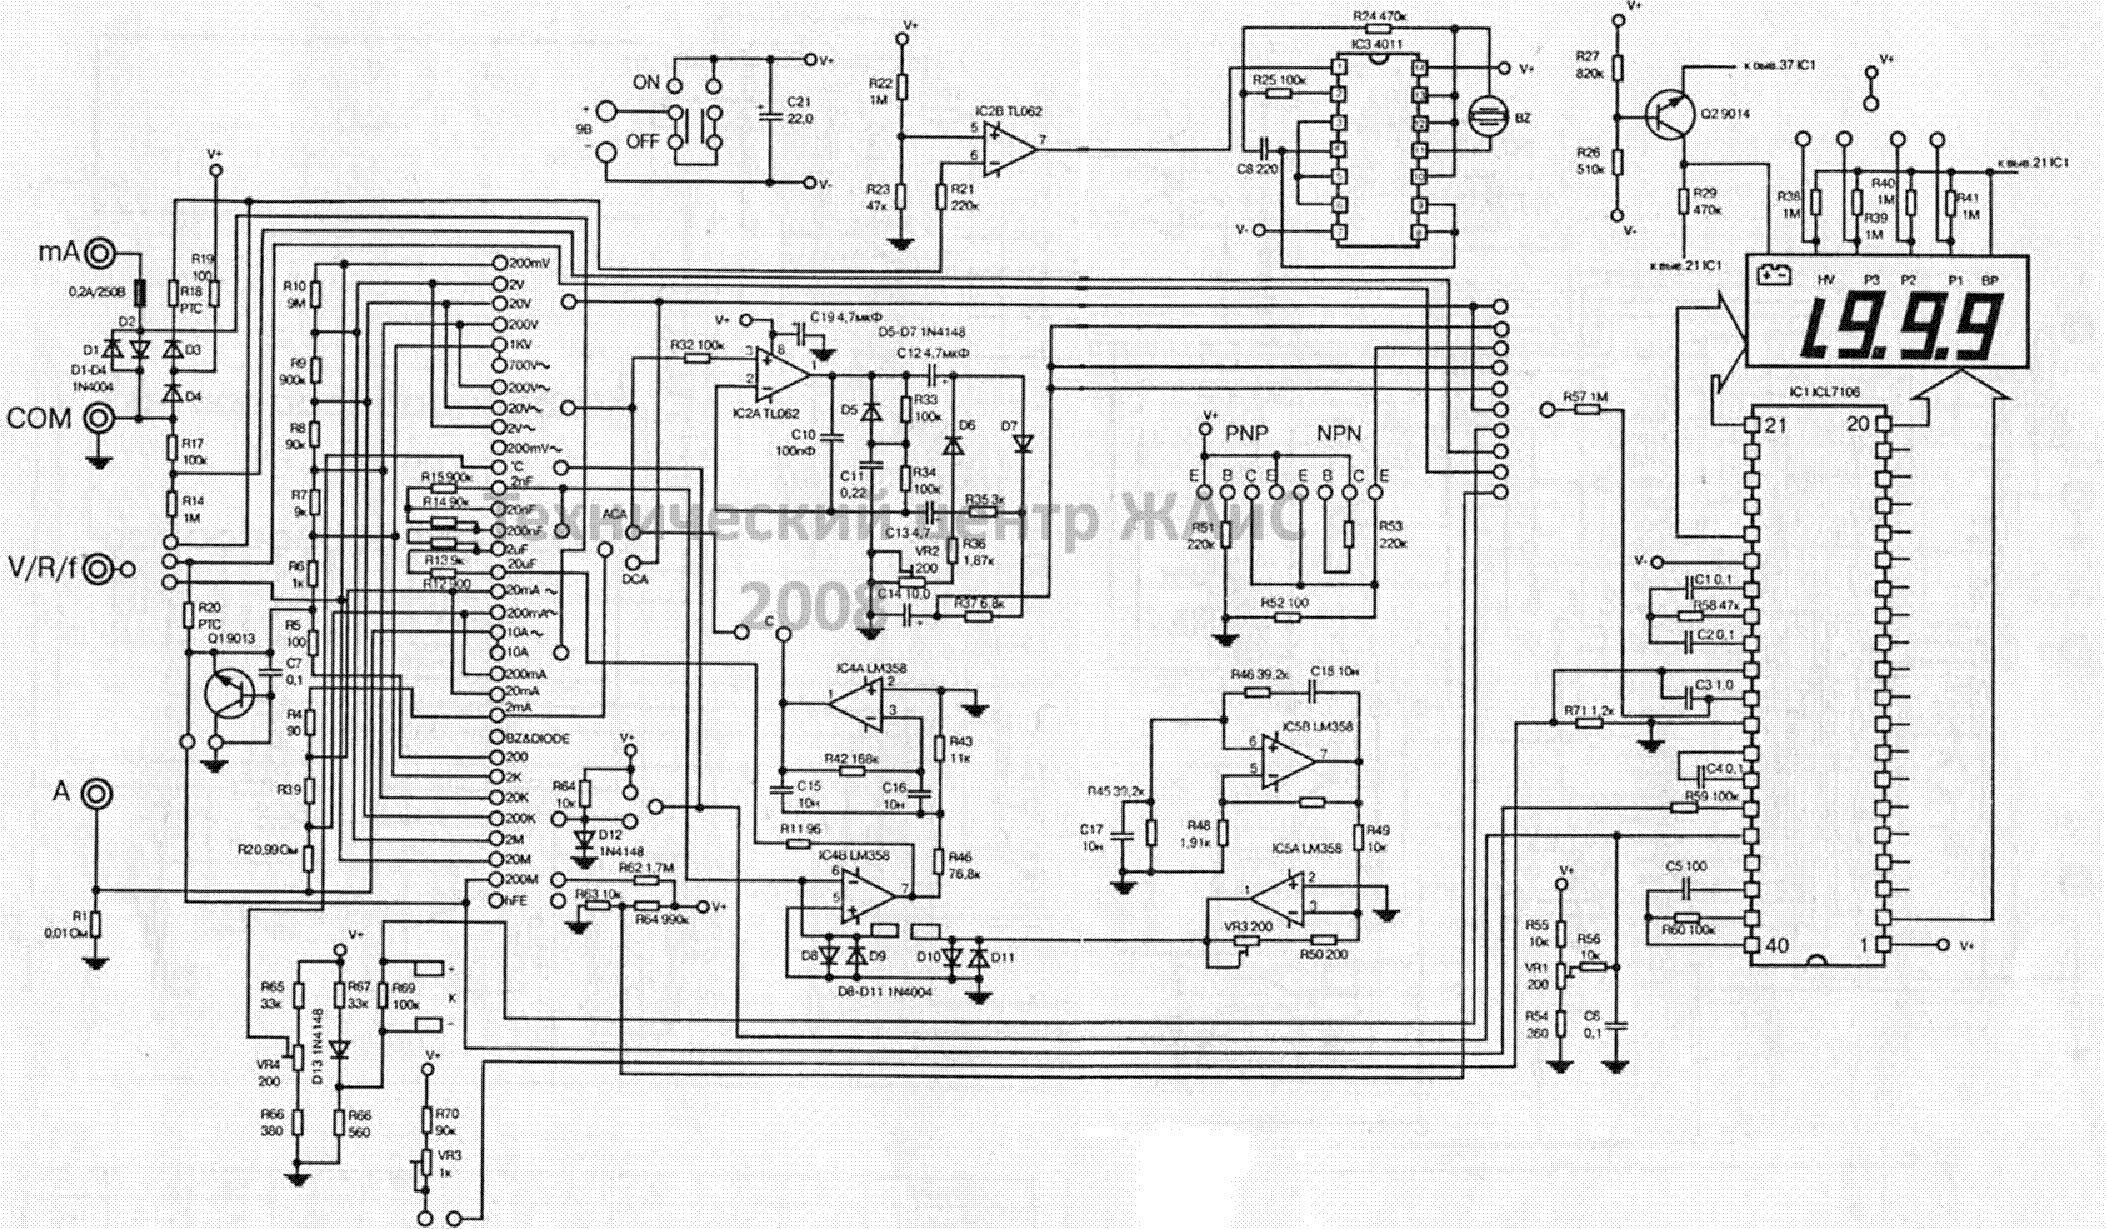 Pictures Of Multimeter Diagram Icl7106 Digital Voltmeter Circuit Schematic Dt9205a Love Wiring